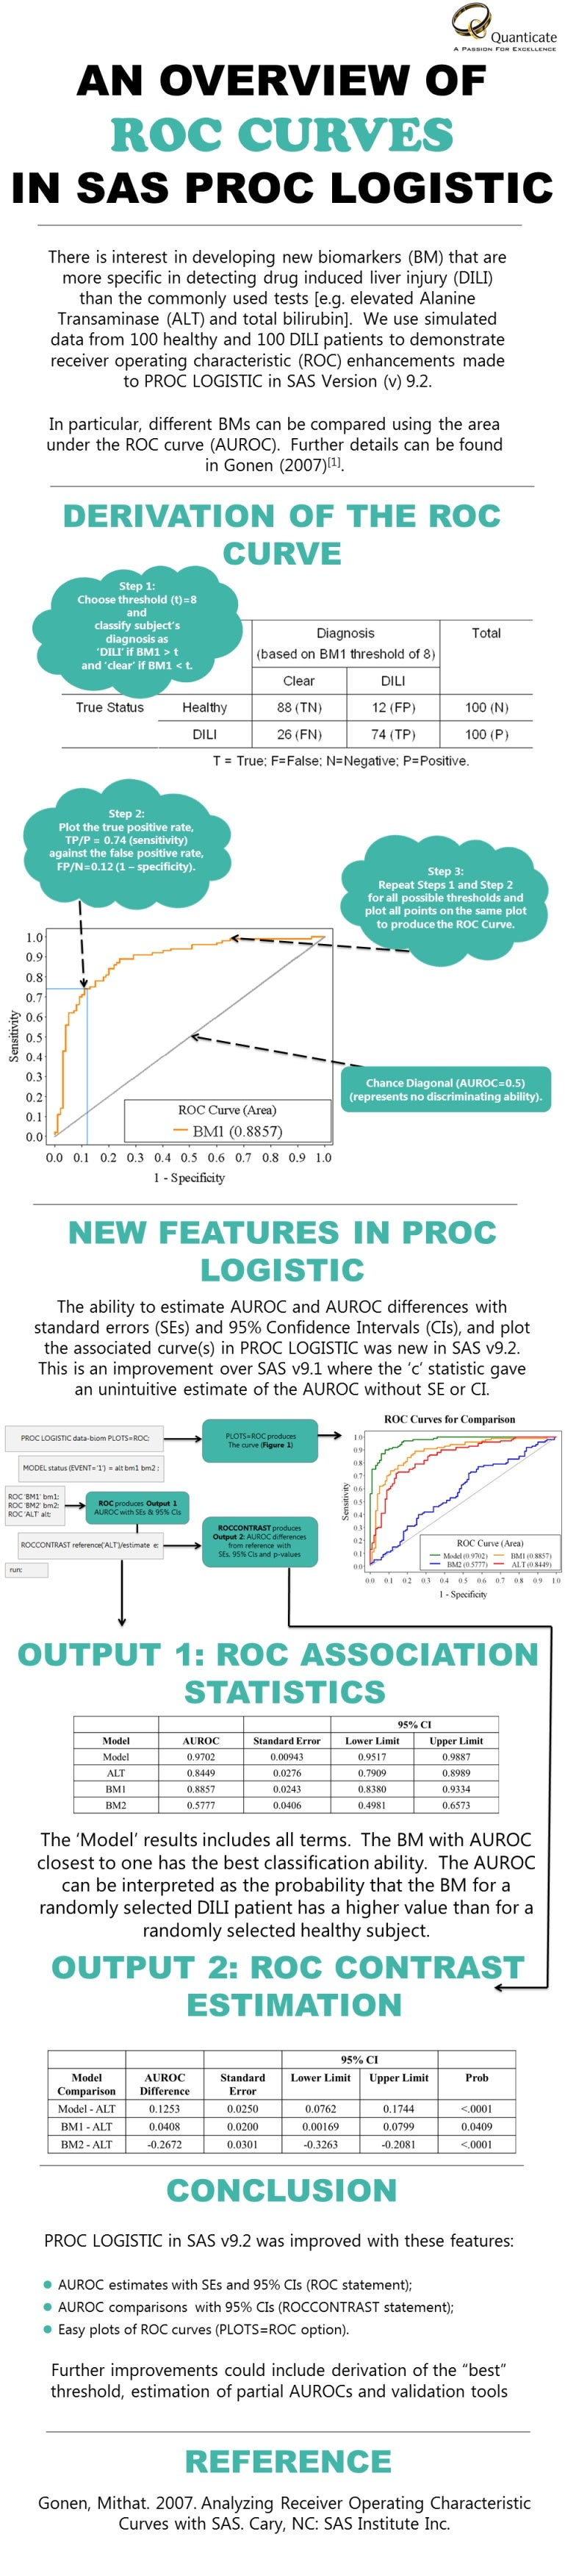 An Overview of ROC Curves in SAS PROC LOGISTIC